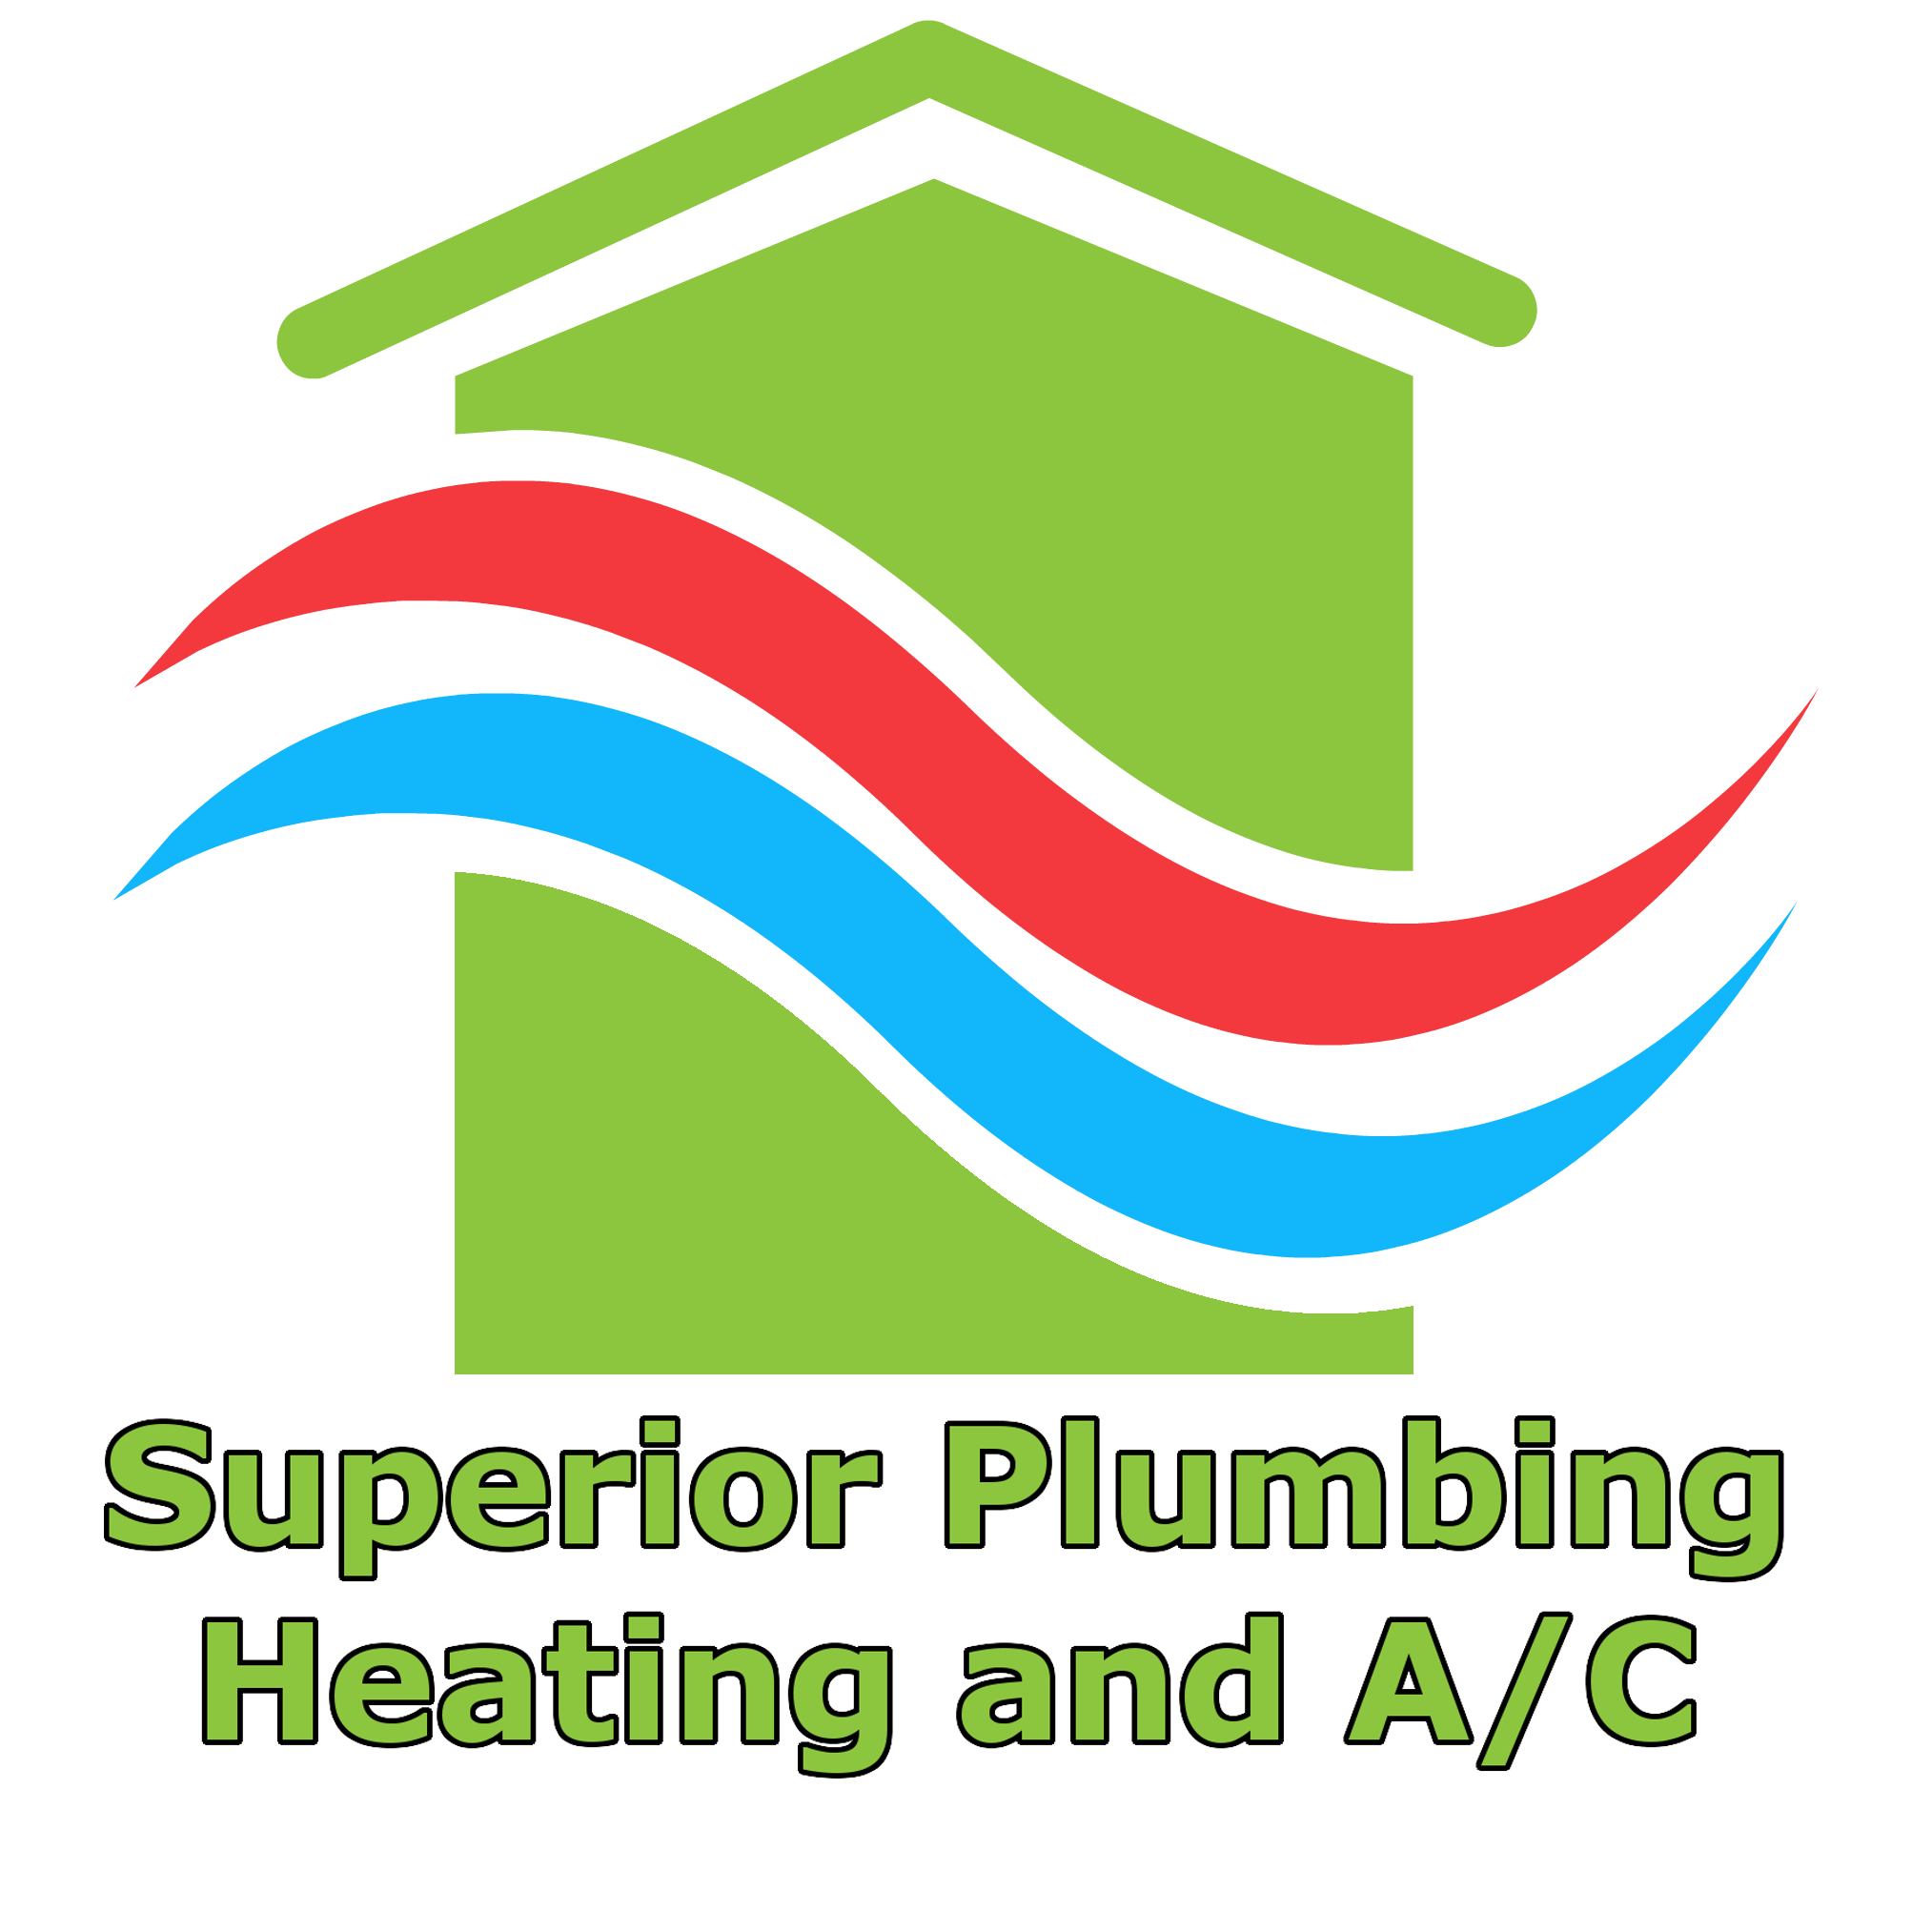 Superior Plumbing, Heating and A/C